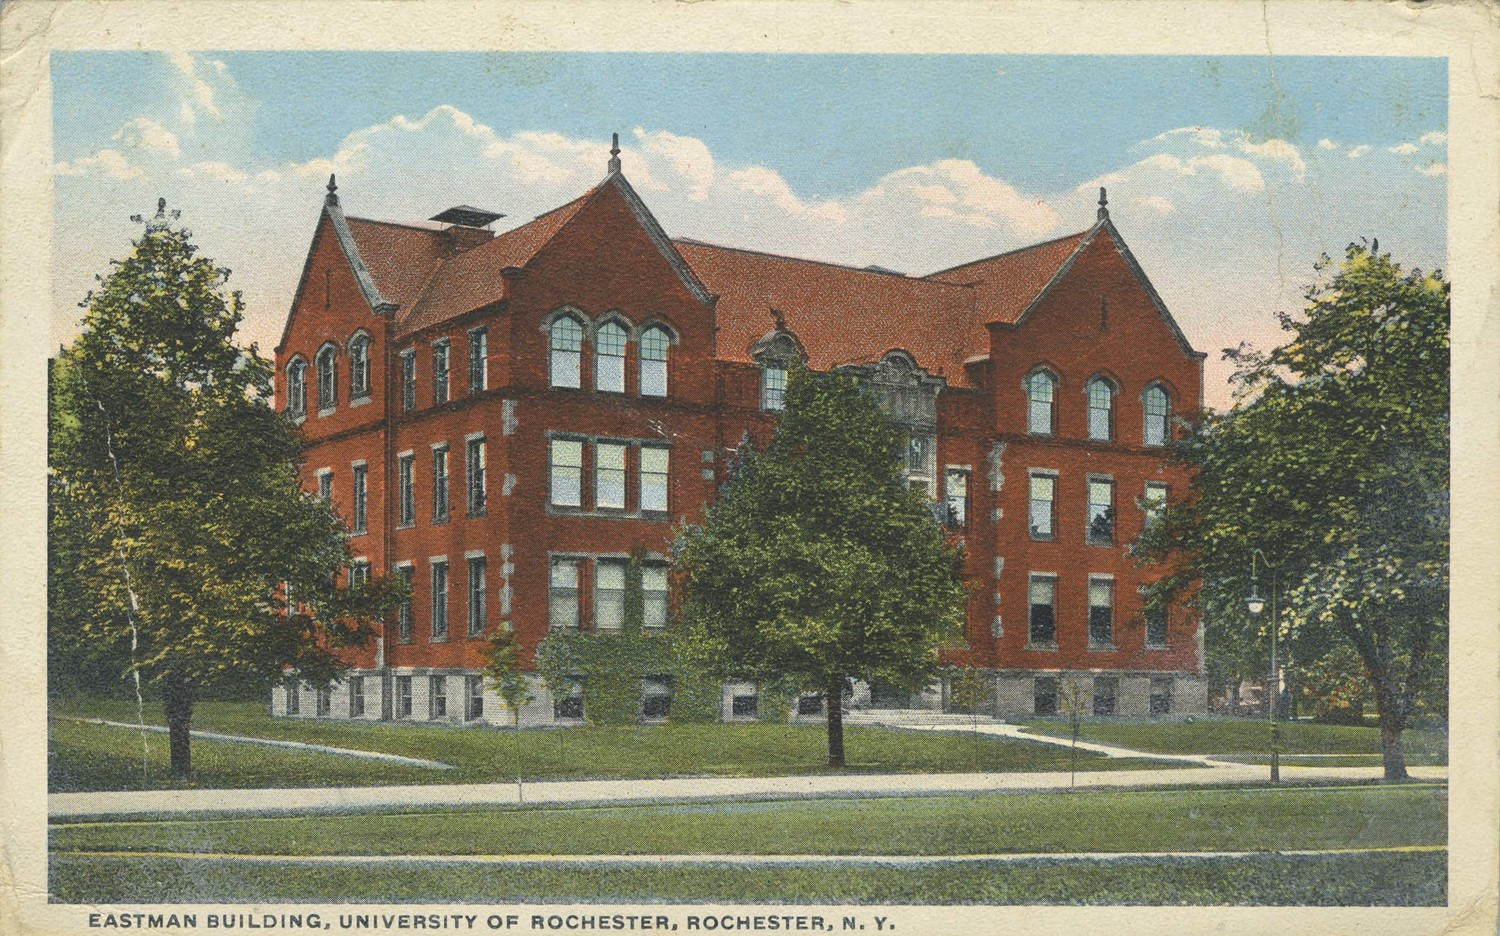 Eastman Building, University of Rochester. Rochester, N.Y.